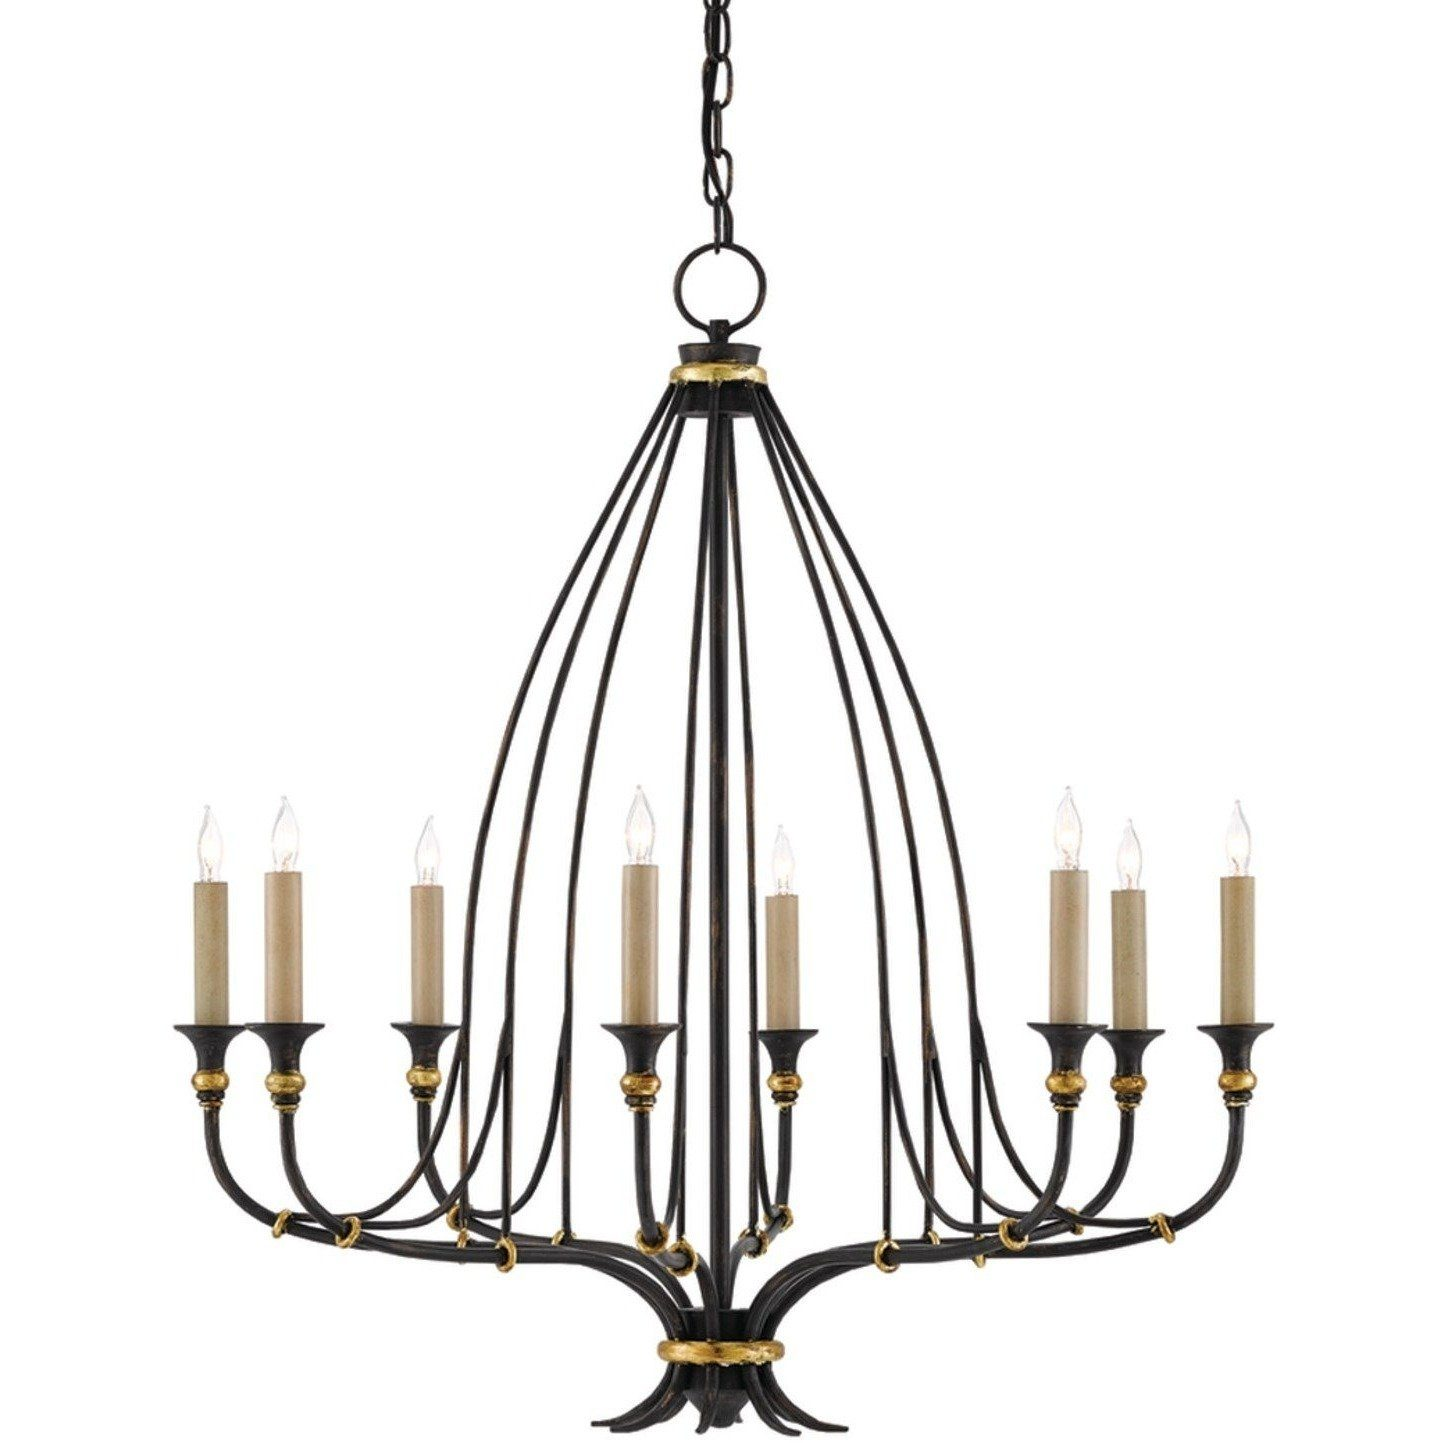 Currey and Company Folgate Chandelier, Small 9000-0214 - LOVECUP